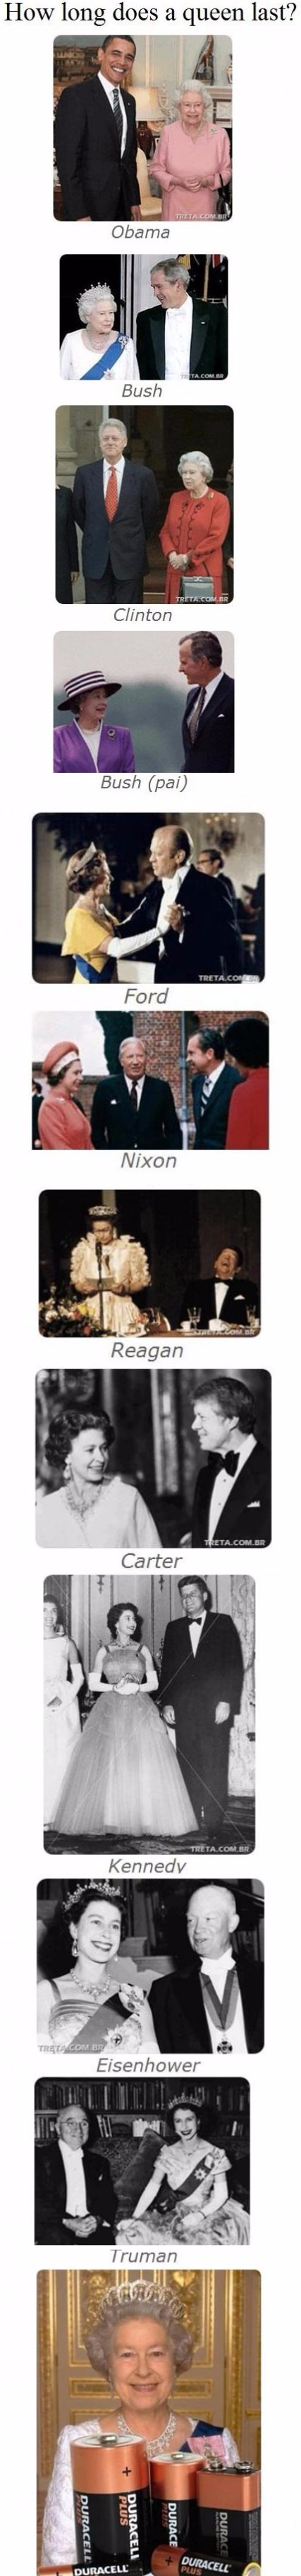 Funny How long does a queen last photo collection